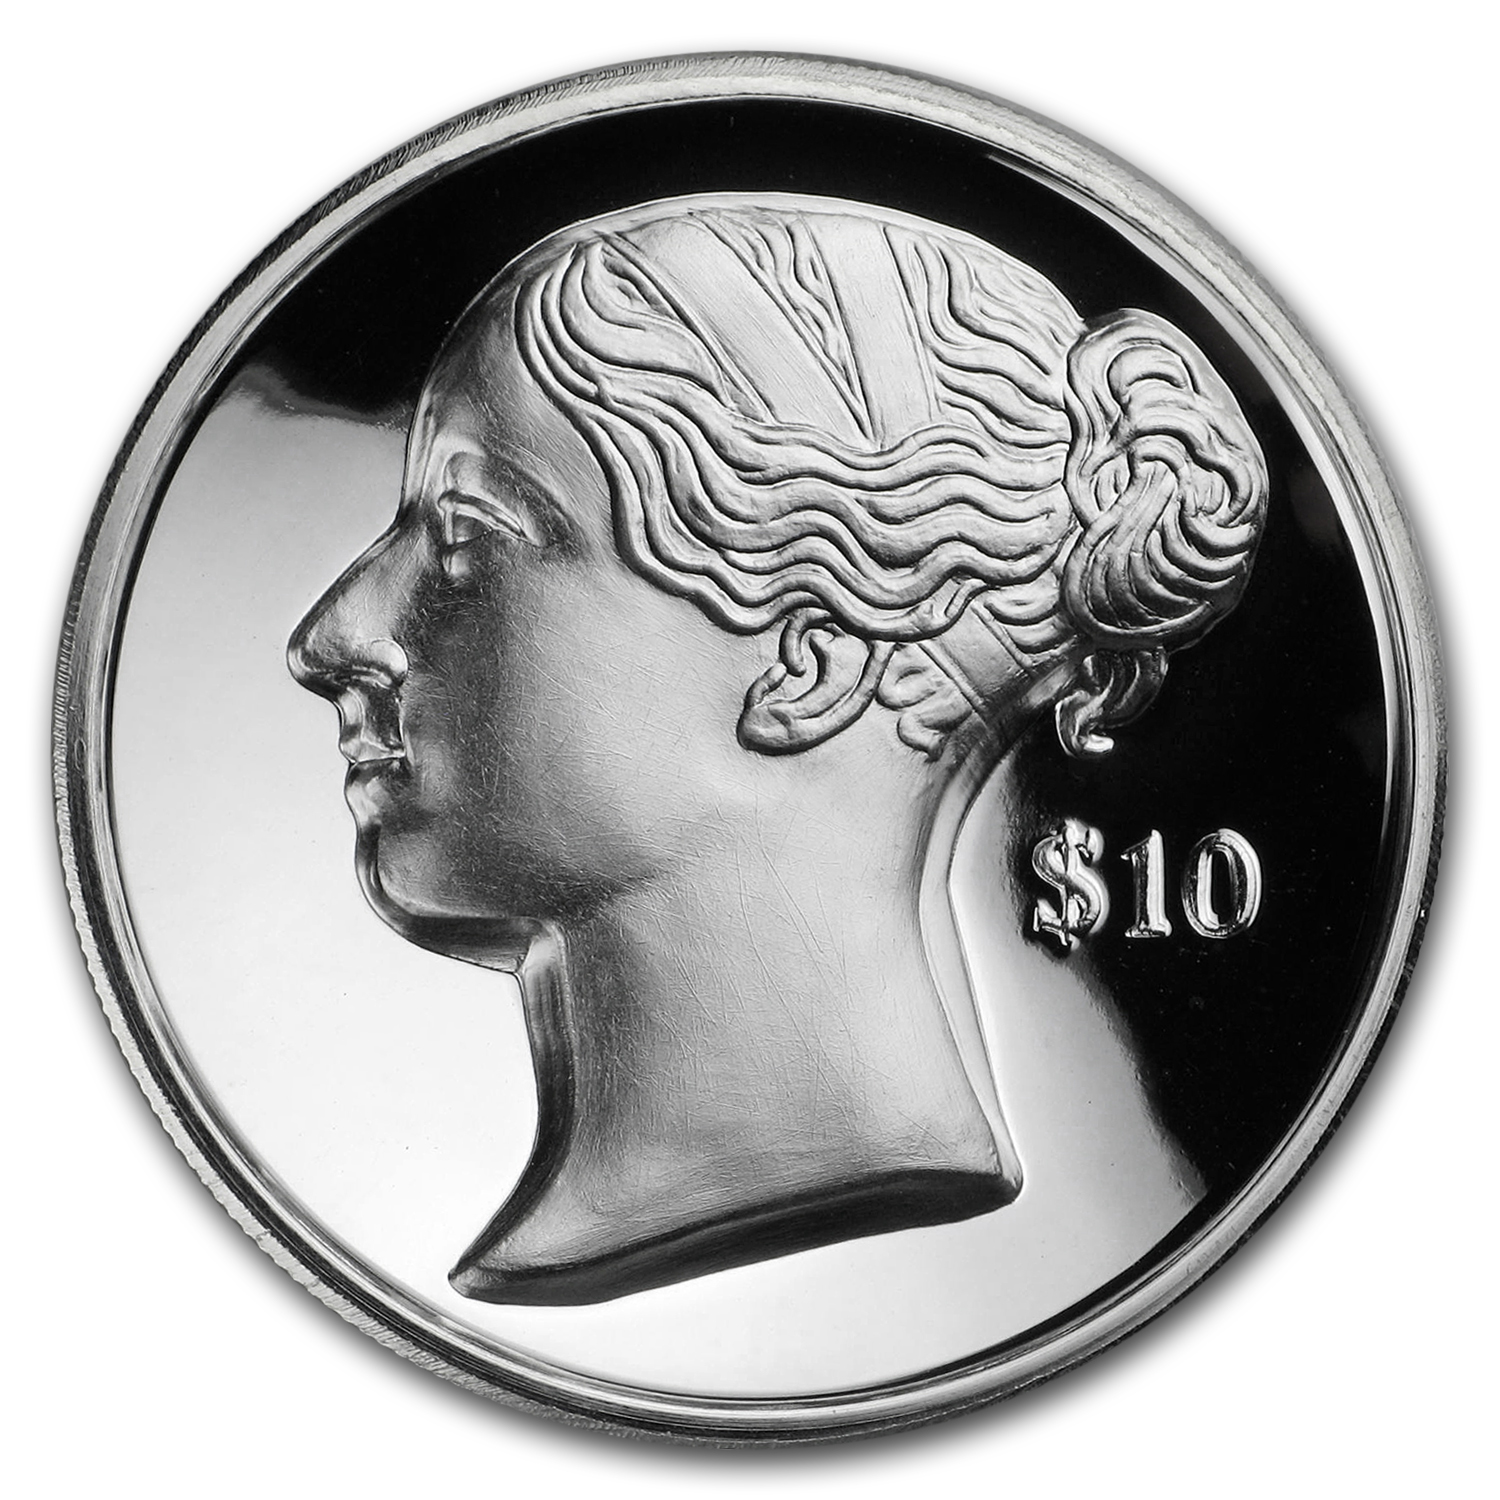 2017 BVI Silver $10 Anniv of Queen Victoria's Accession (UHR)